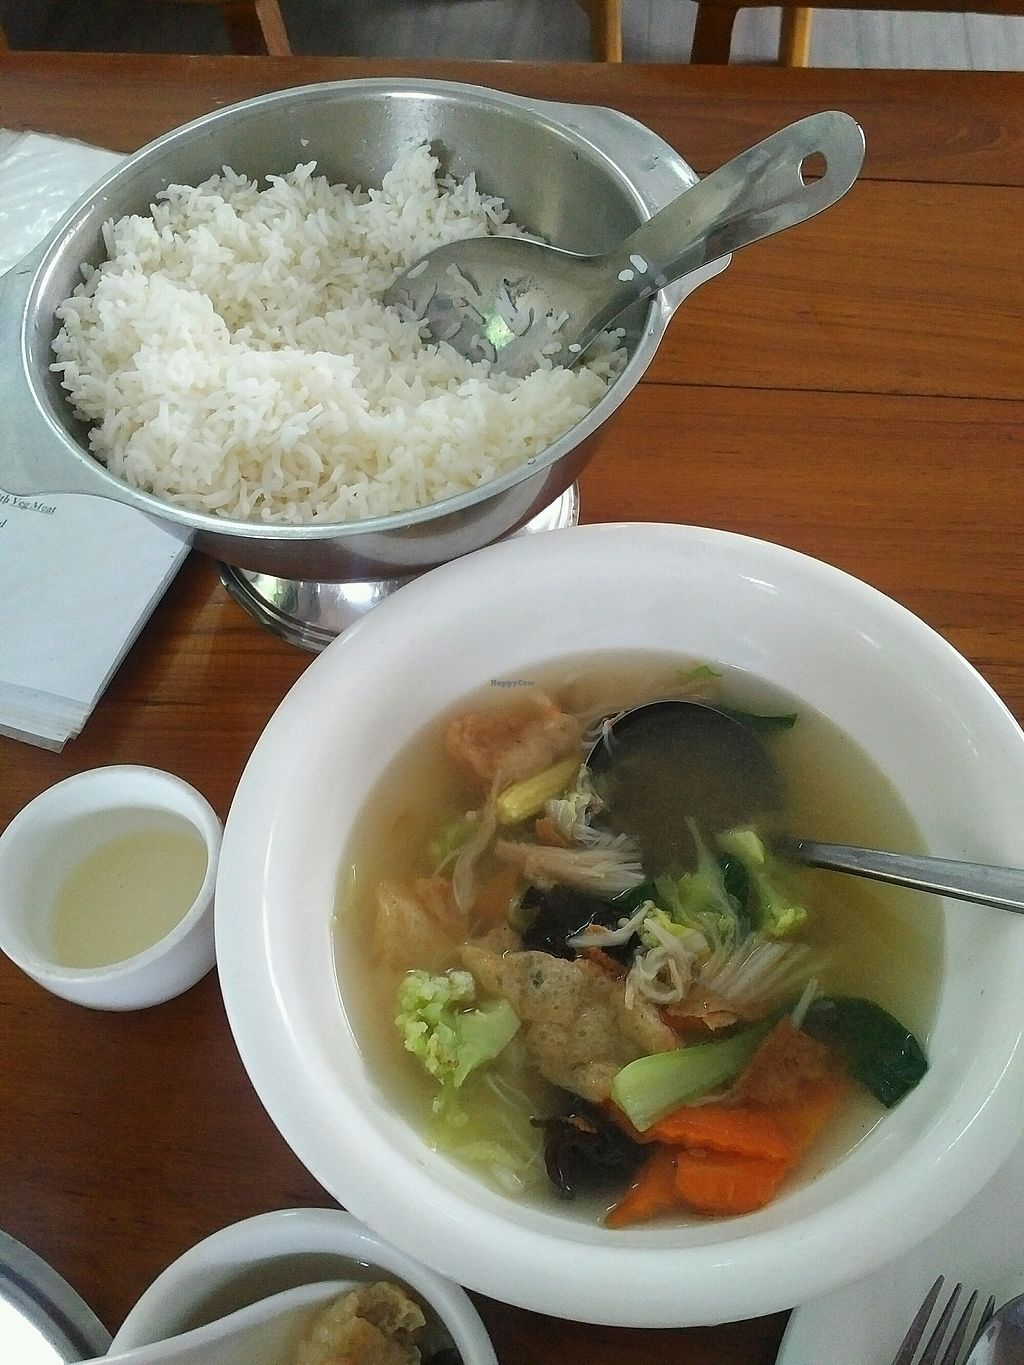 """Photo of Lanmadaw Vegetarian Restaurant  by <a href=""""/members/profile/CharbelKhoury"""">CharbelKhoury</a> <br/>vegetables soup and a pot of steamed rice  <br/> October 20, 2017  - <a href='/contact/abuse/image/67062/316849'>Report</a>"""